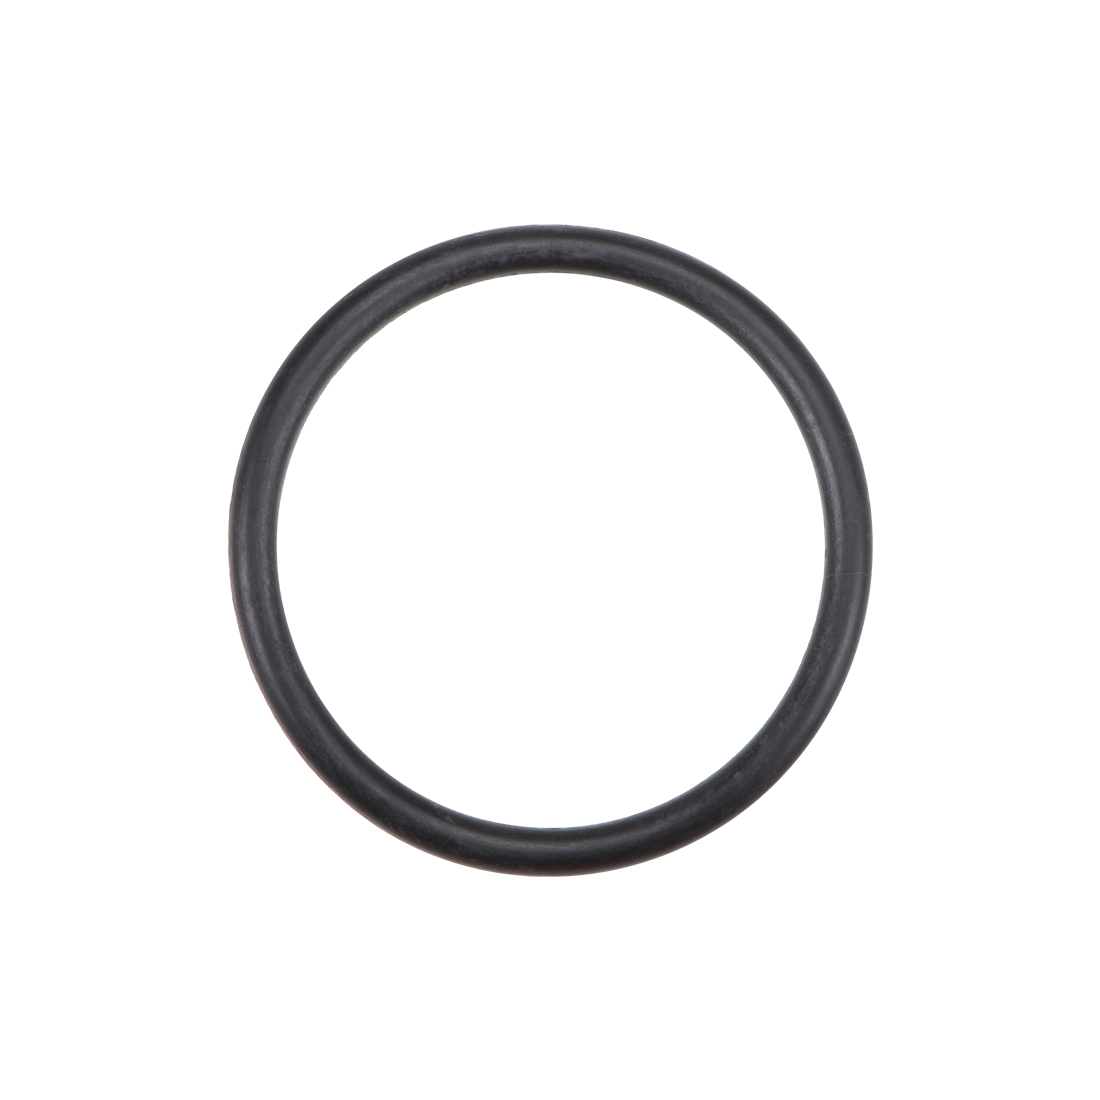 O-Rings Nitrile Rubber 29mm x 34.3mm x 2.65mm Round Seal Gasket